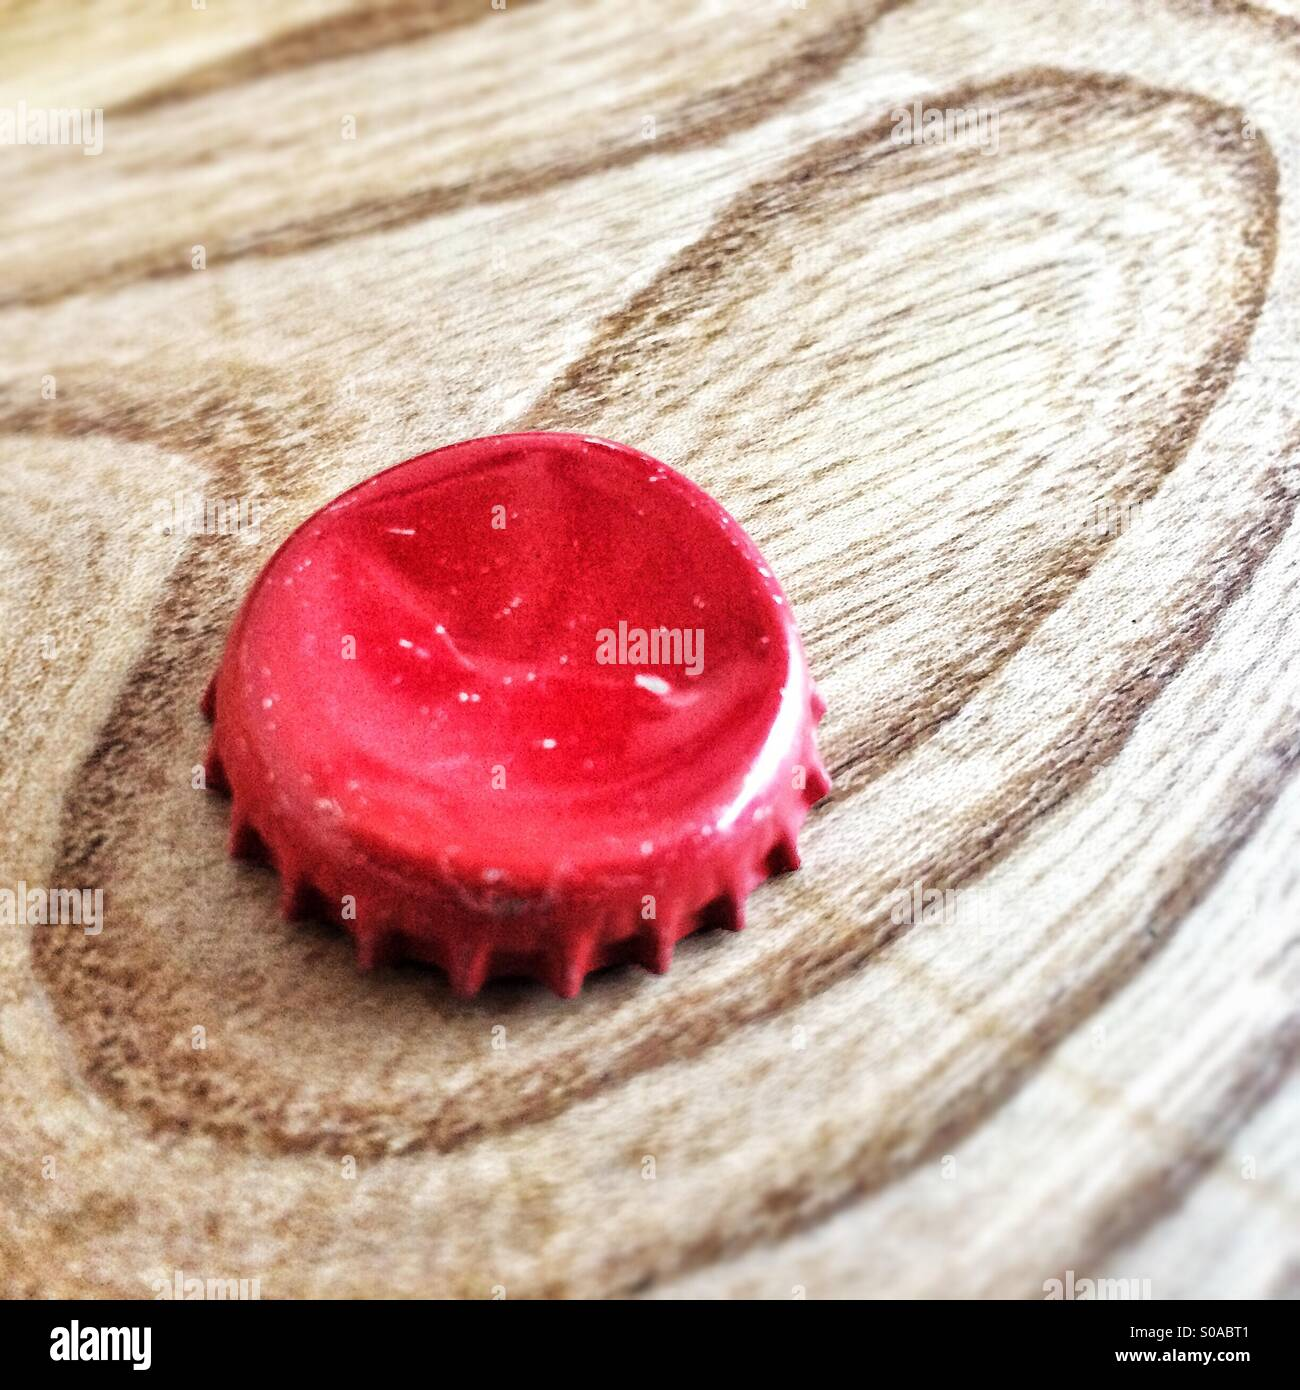 A red bottle top sits on a wooden work top amongst the wood grain pattern. - Stock Image